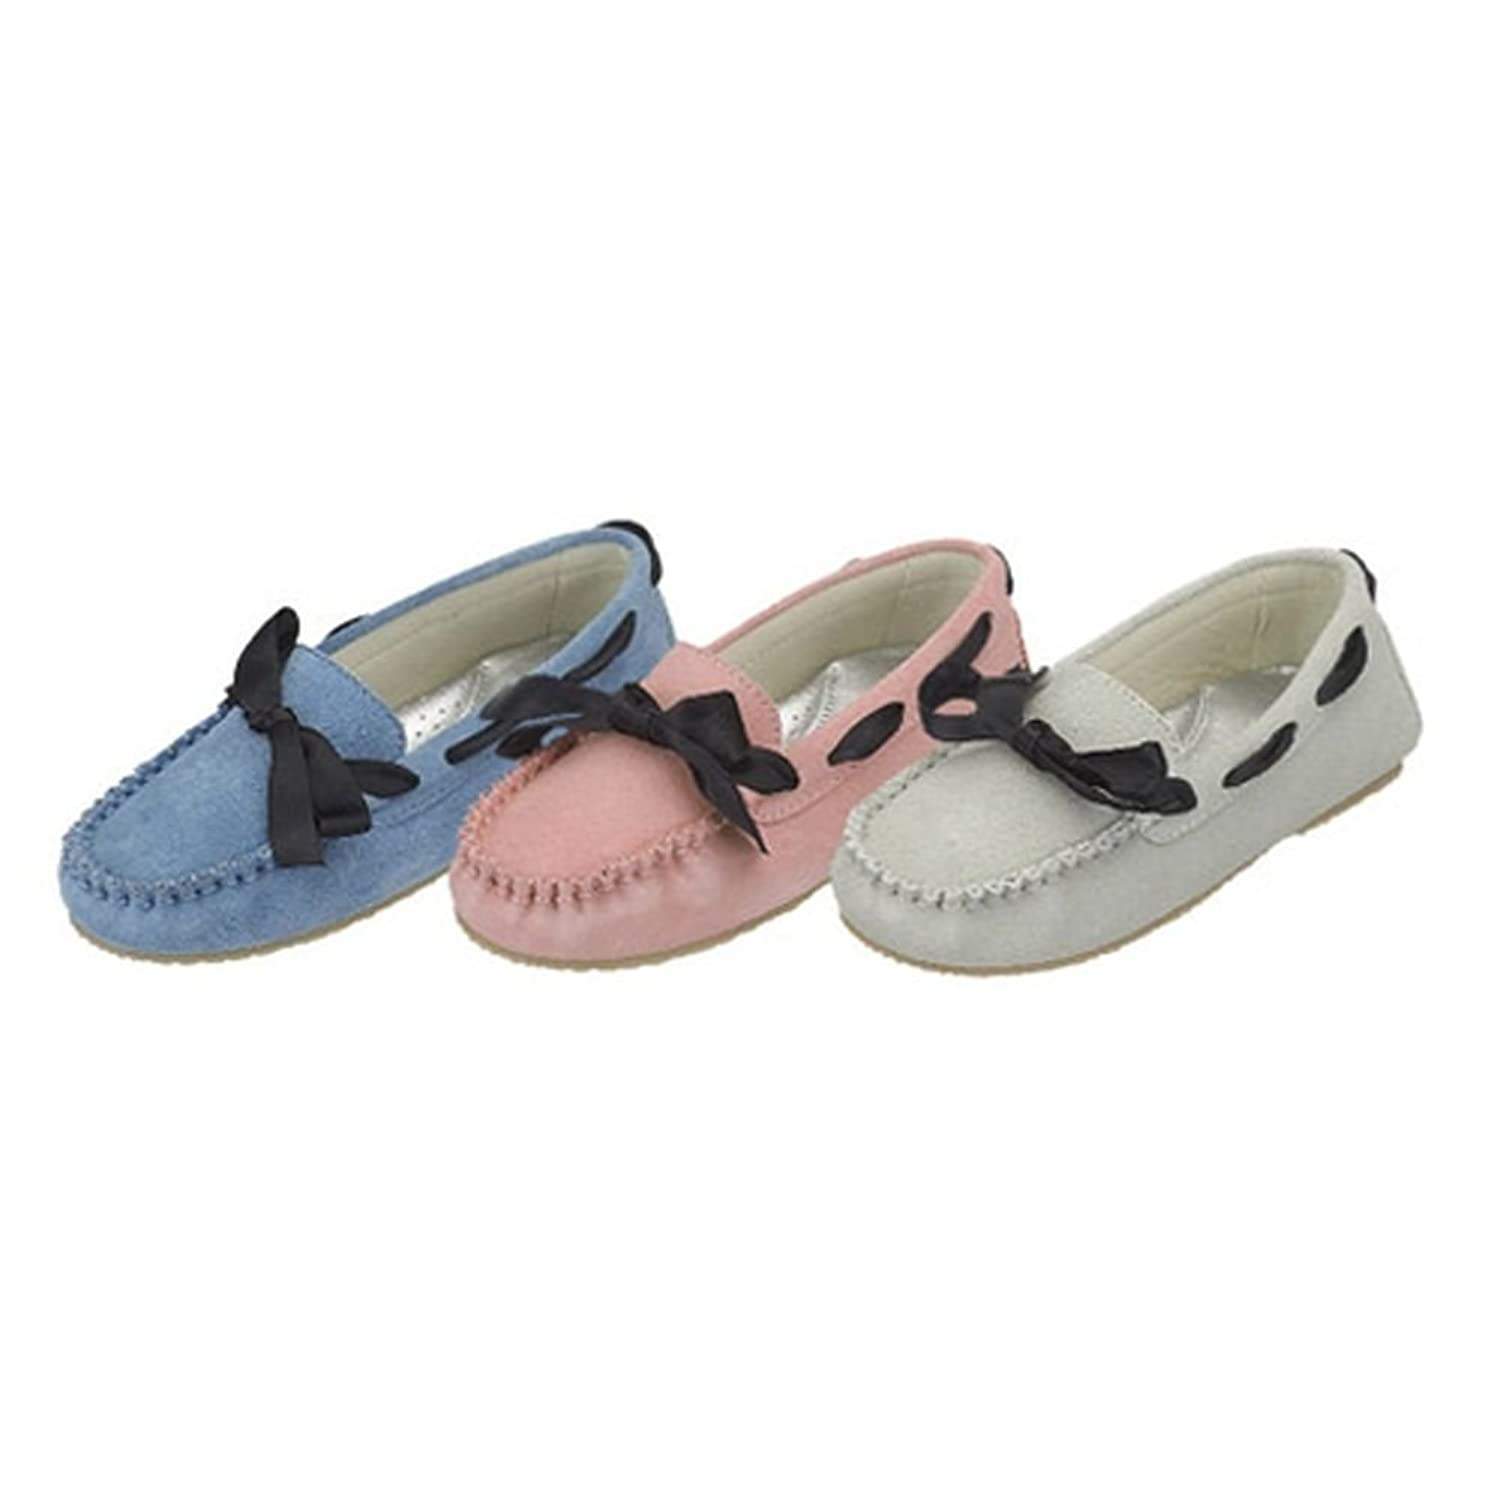 Toddler Girls Blue Ribbon Tie Moccasin Casual Shoes 7T-4